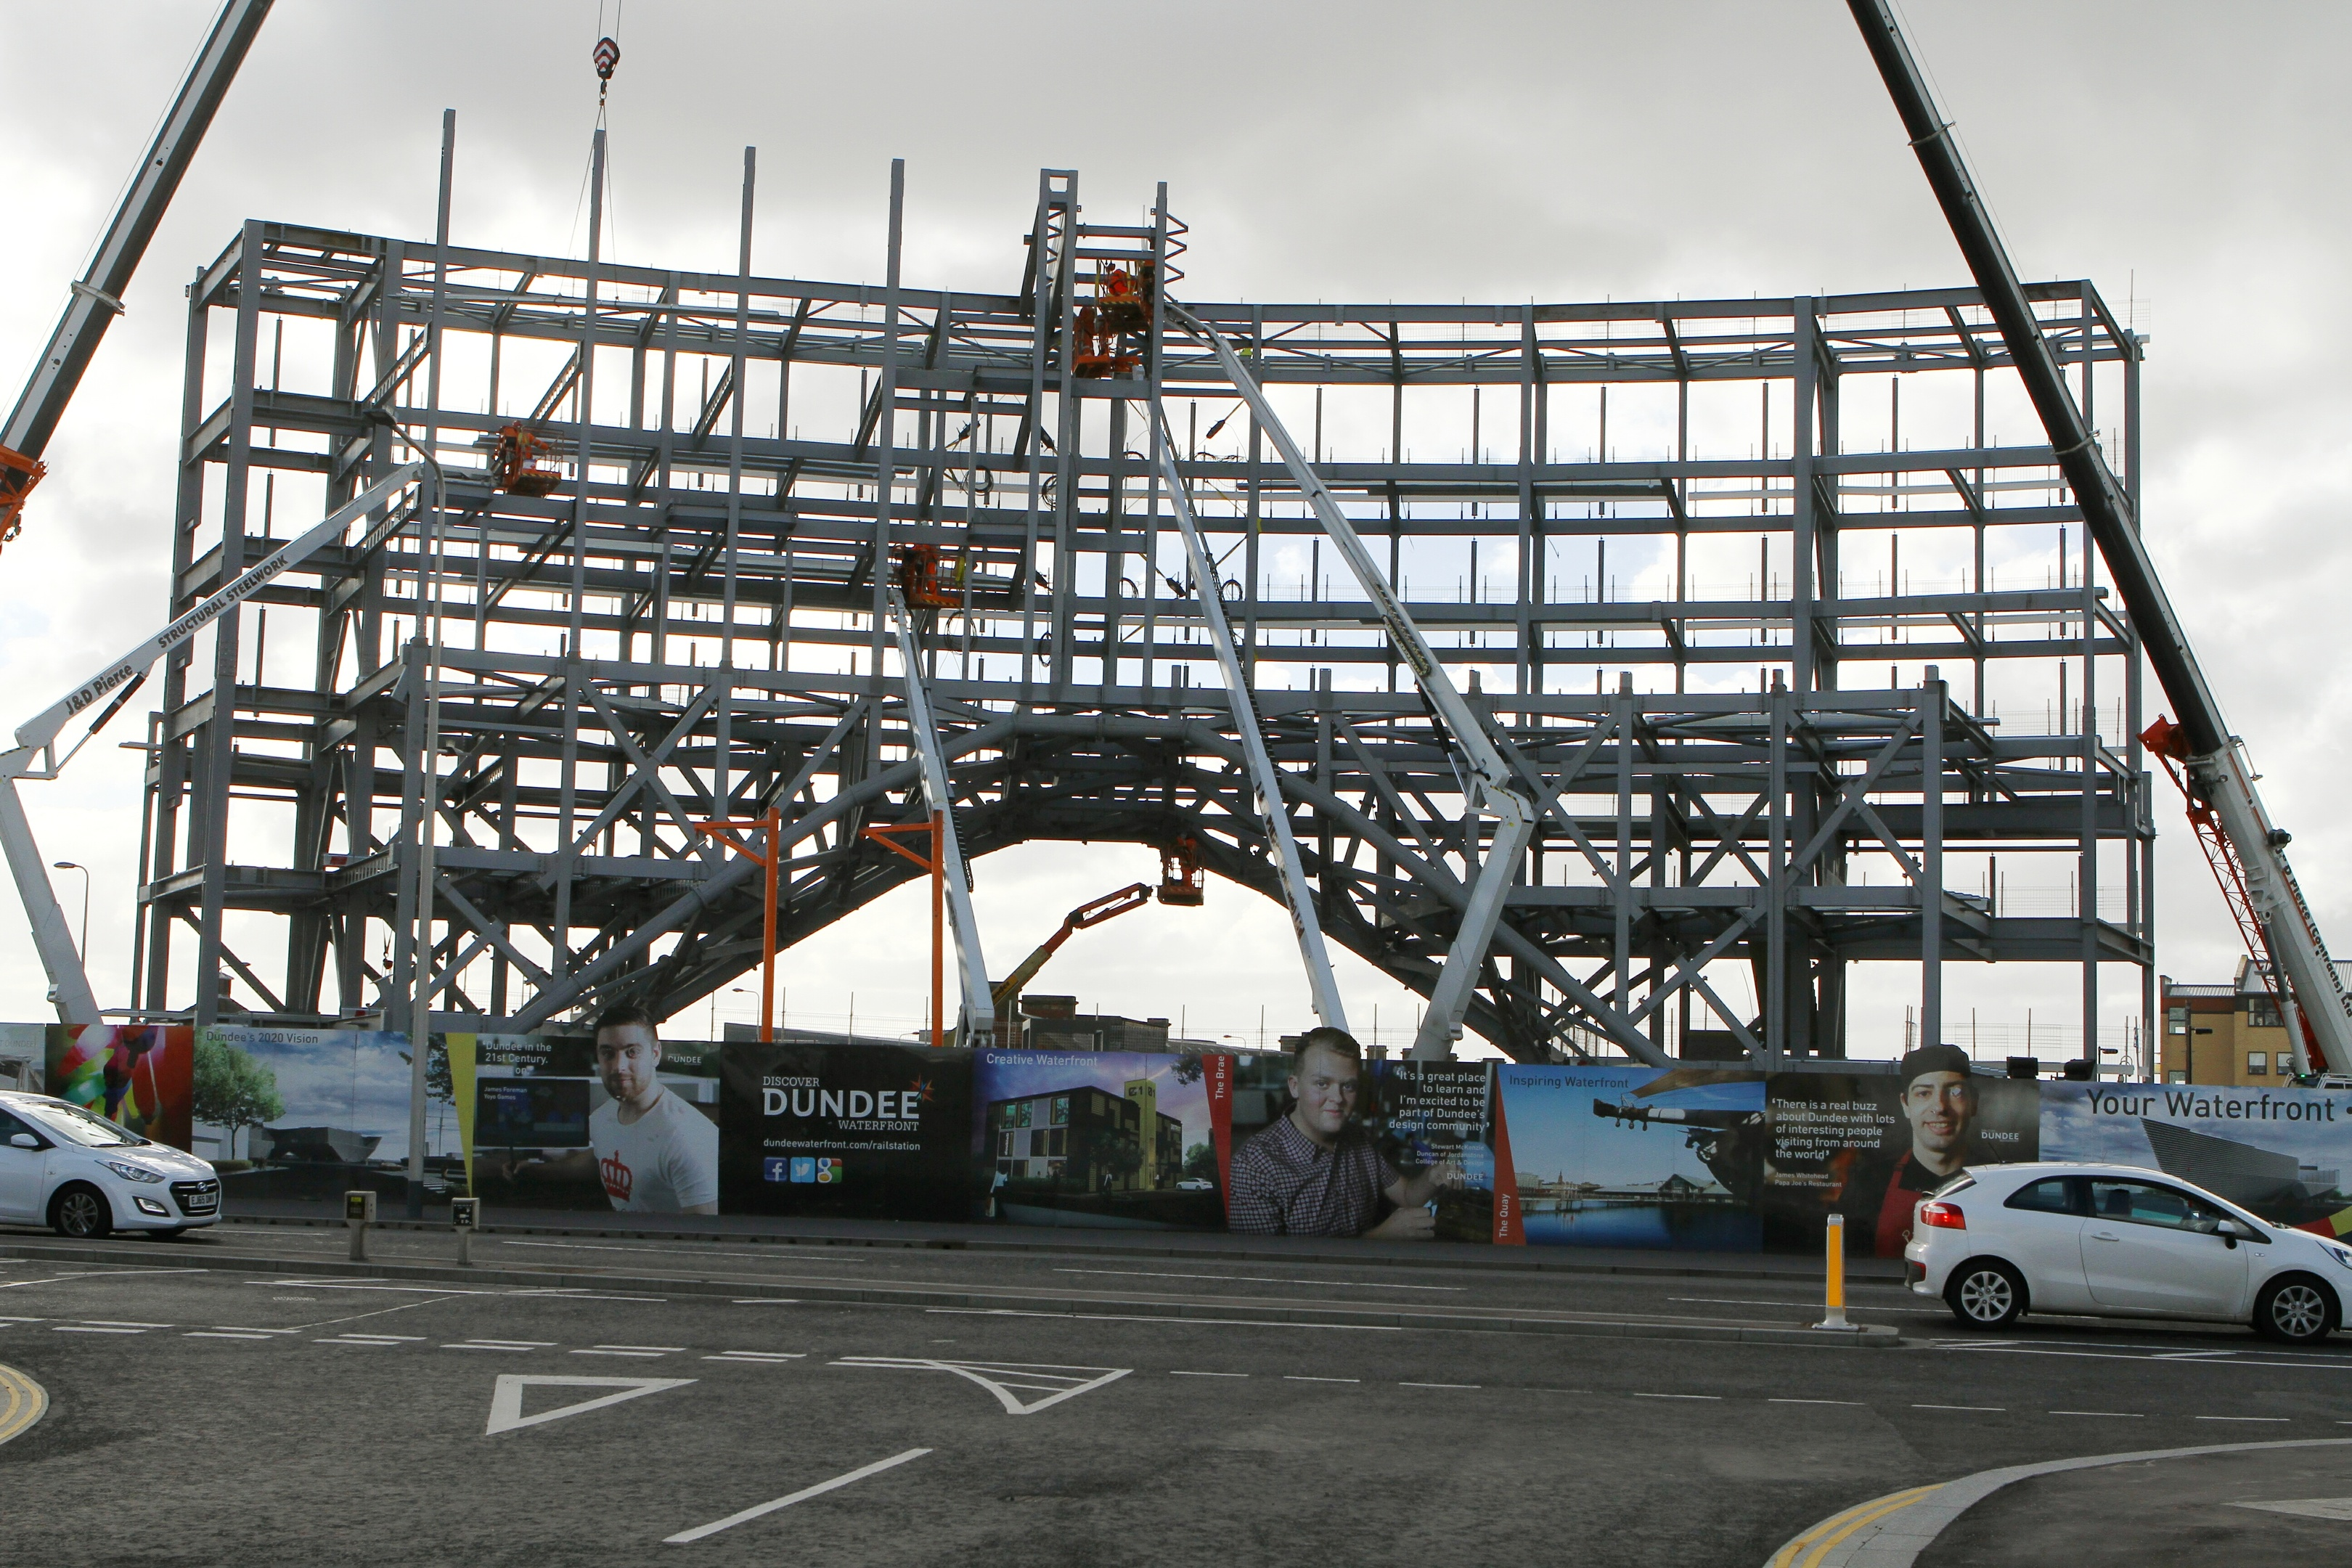 The new Dundee Station/Sleeperz Hotel under construction.